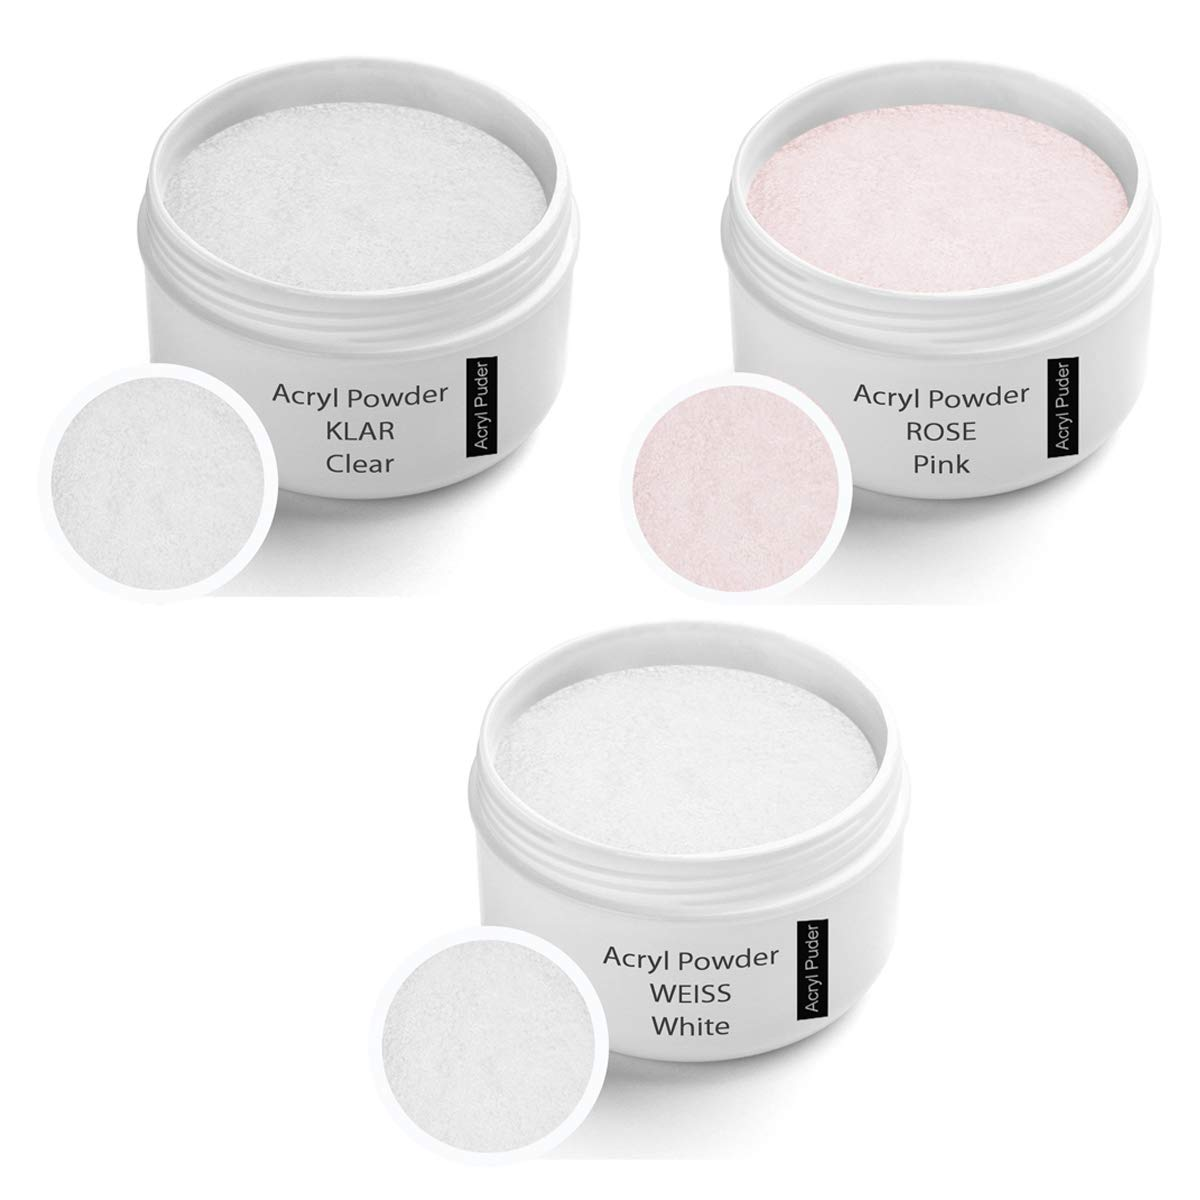 Acrylic powder Set, Clear 30g, Rose 30g, White 30